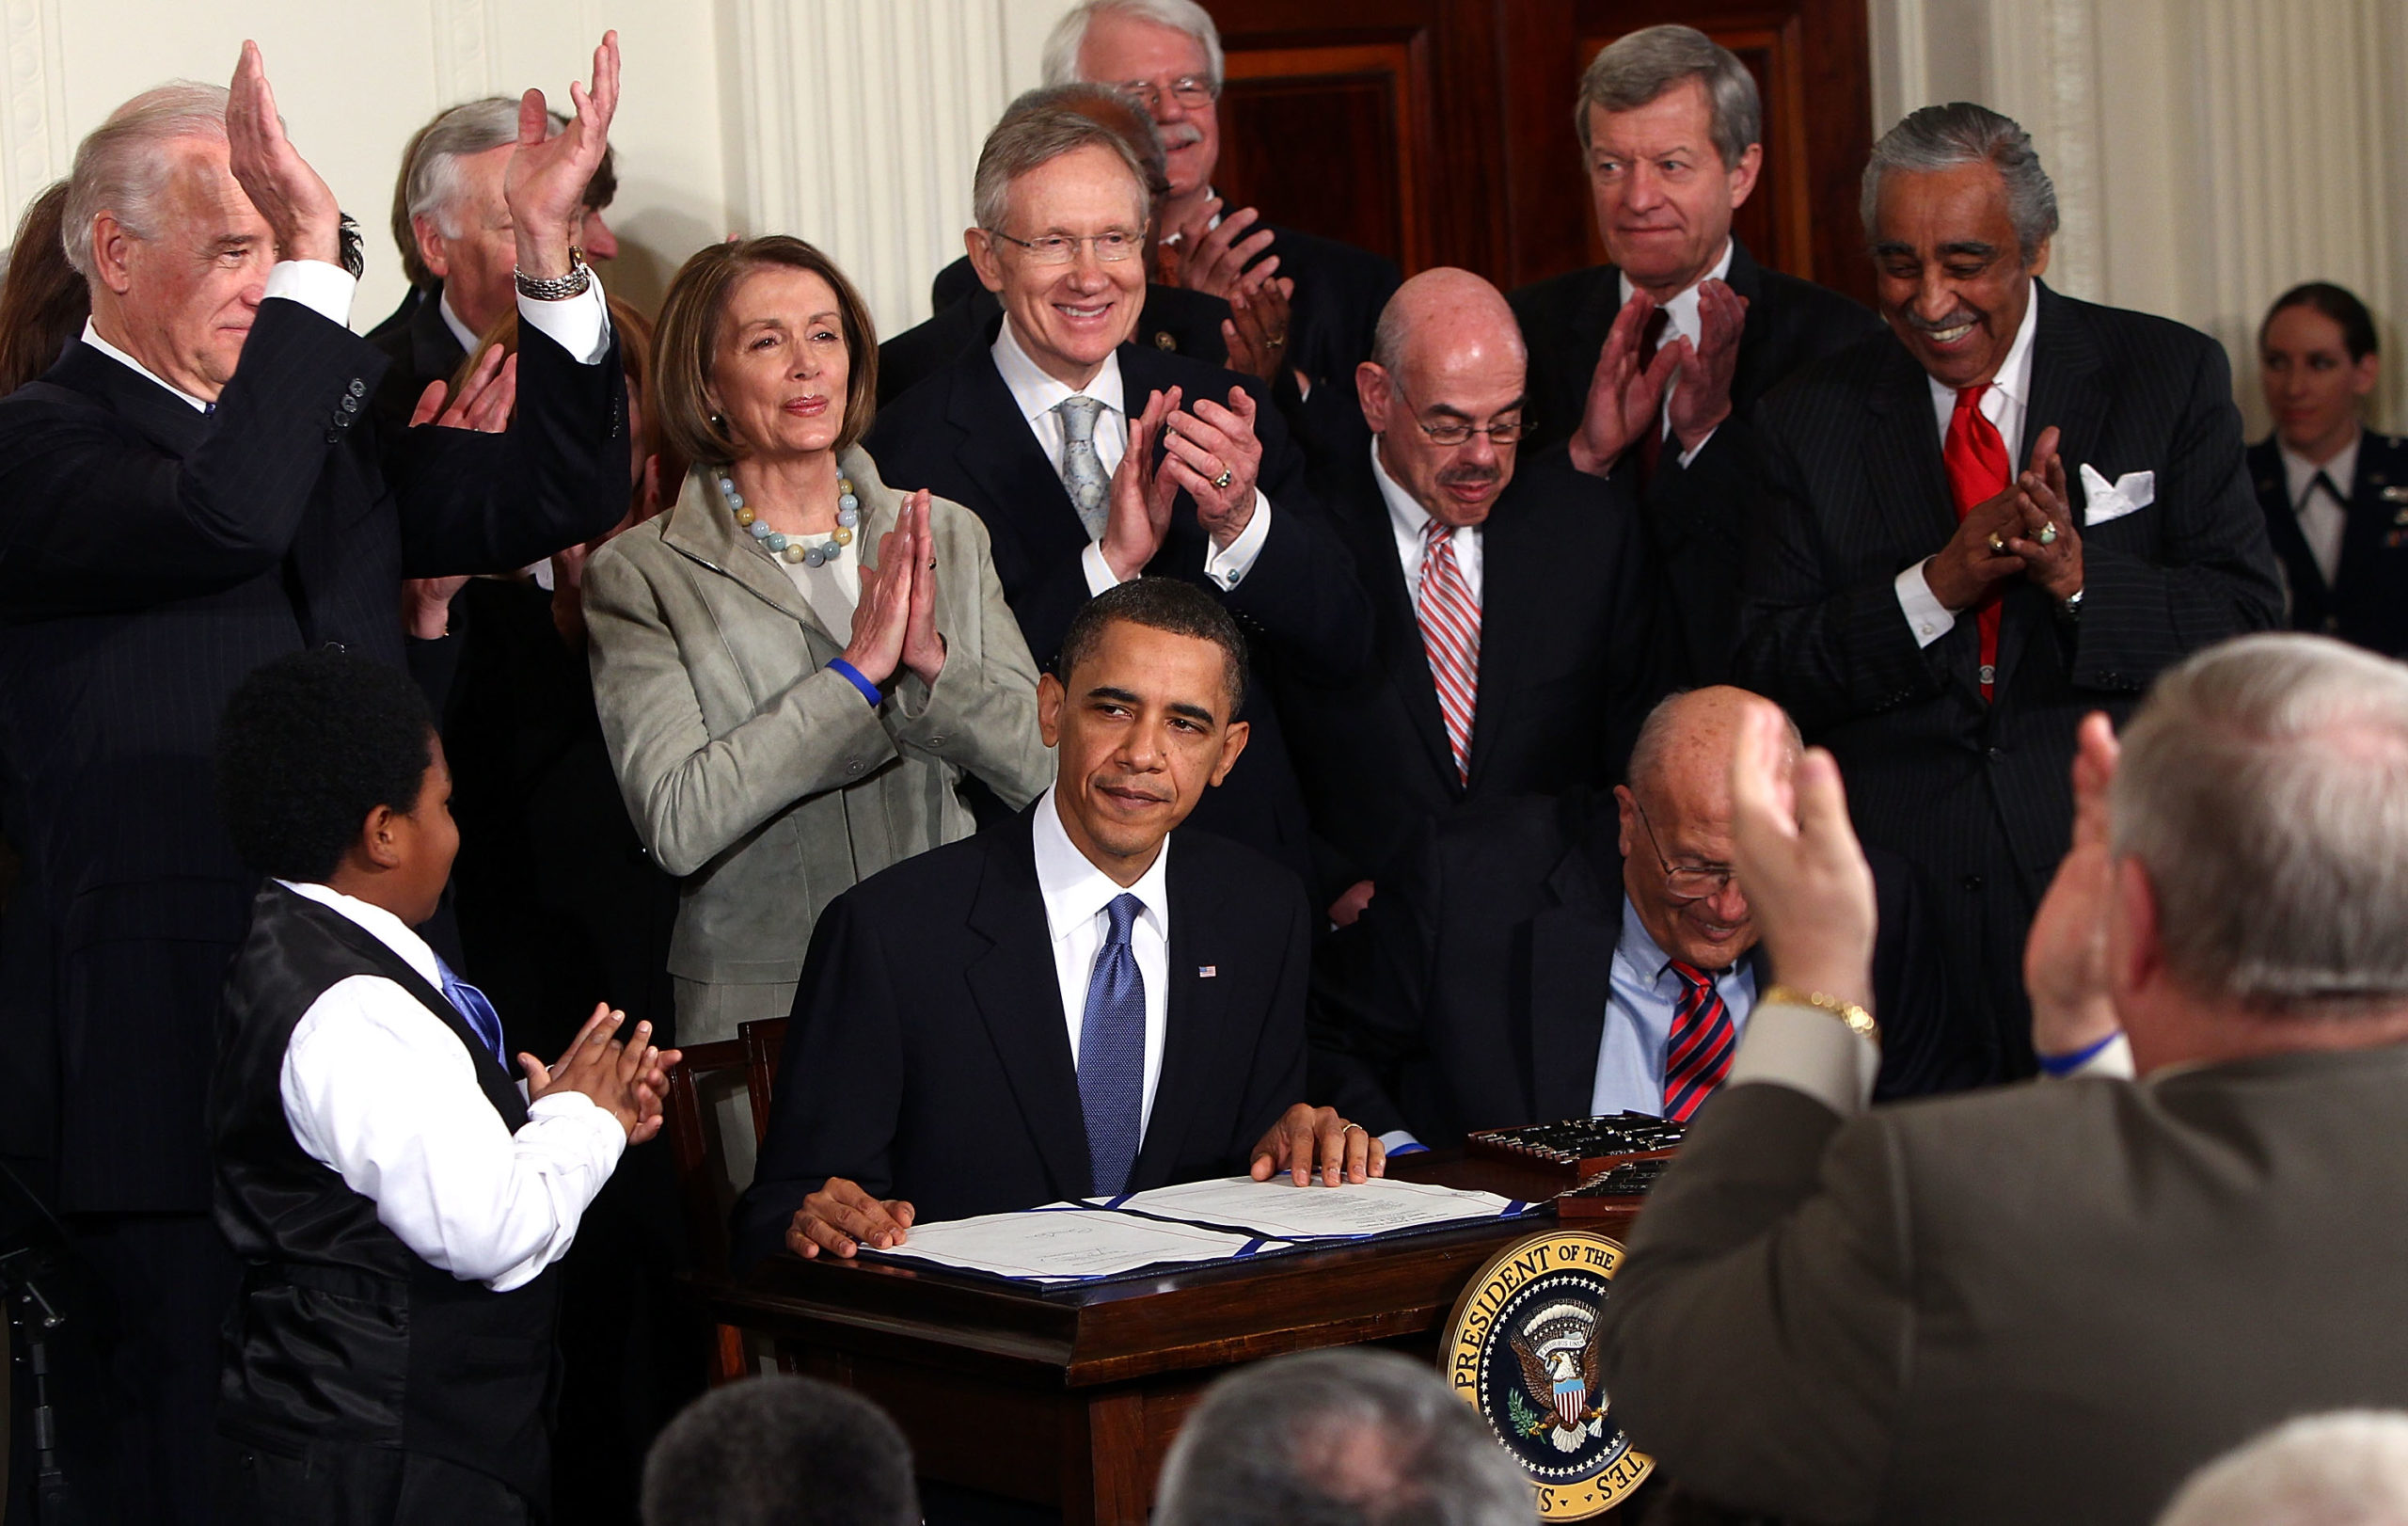 Former President Barack Obama is applauded after signing the Affordable Health Care Act during a ceremony with fellow Democrats in the East Room of the White House March 23, 2010. (Win McNamee/Getty Images)